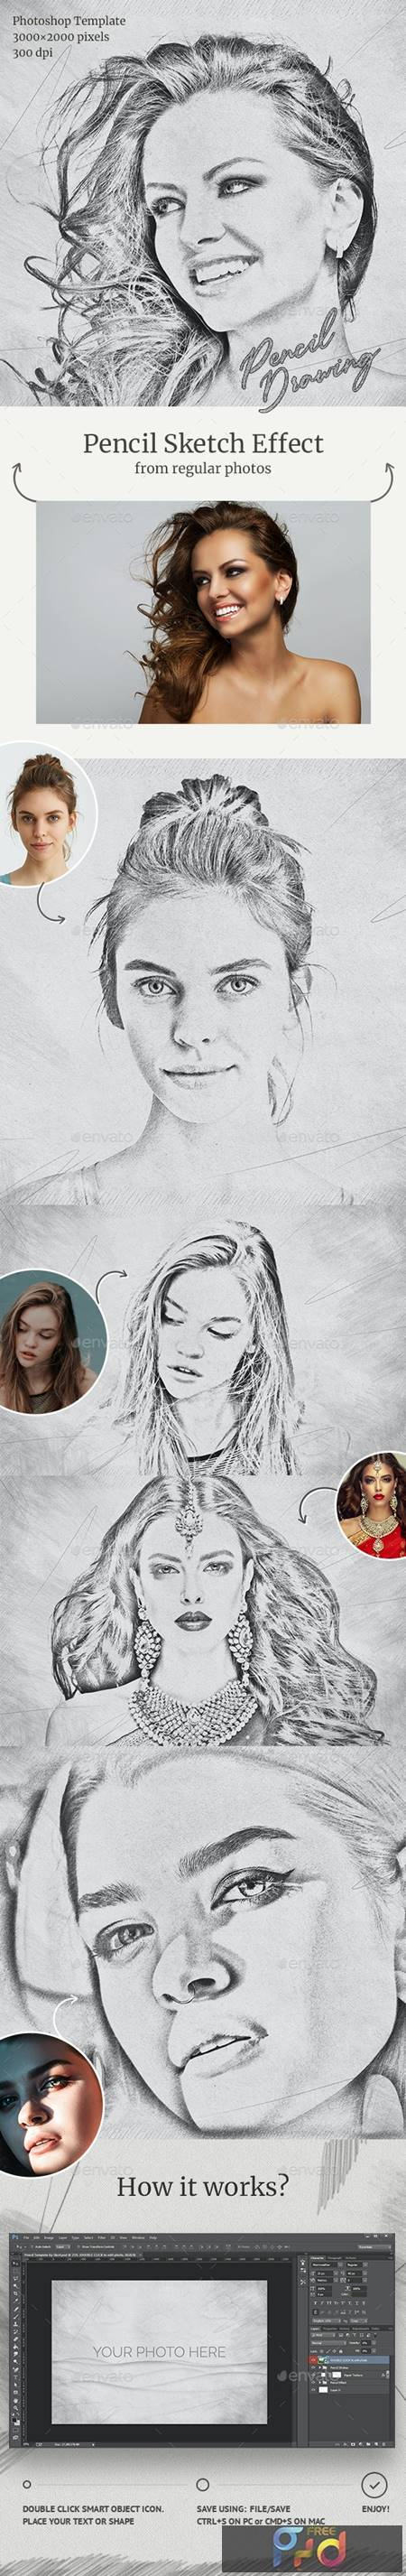 Pencil Drawing Photoshop Template 28663627 1